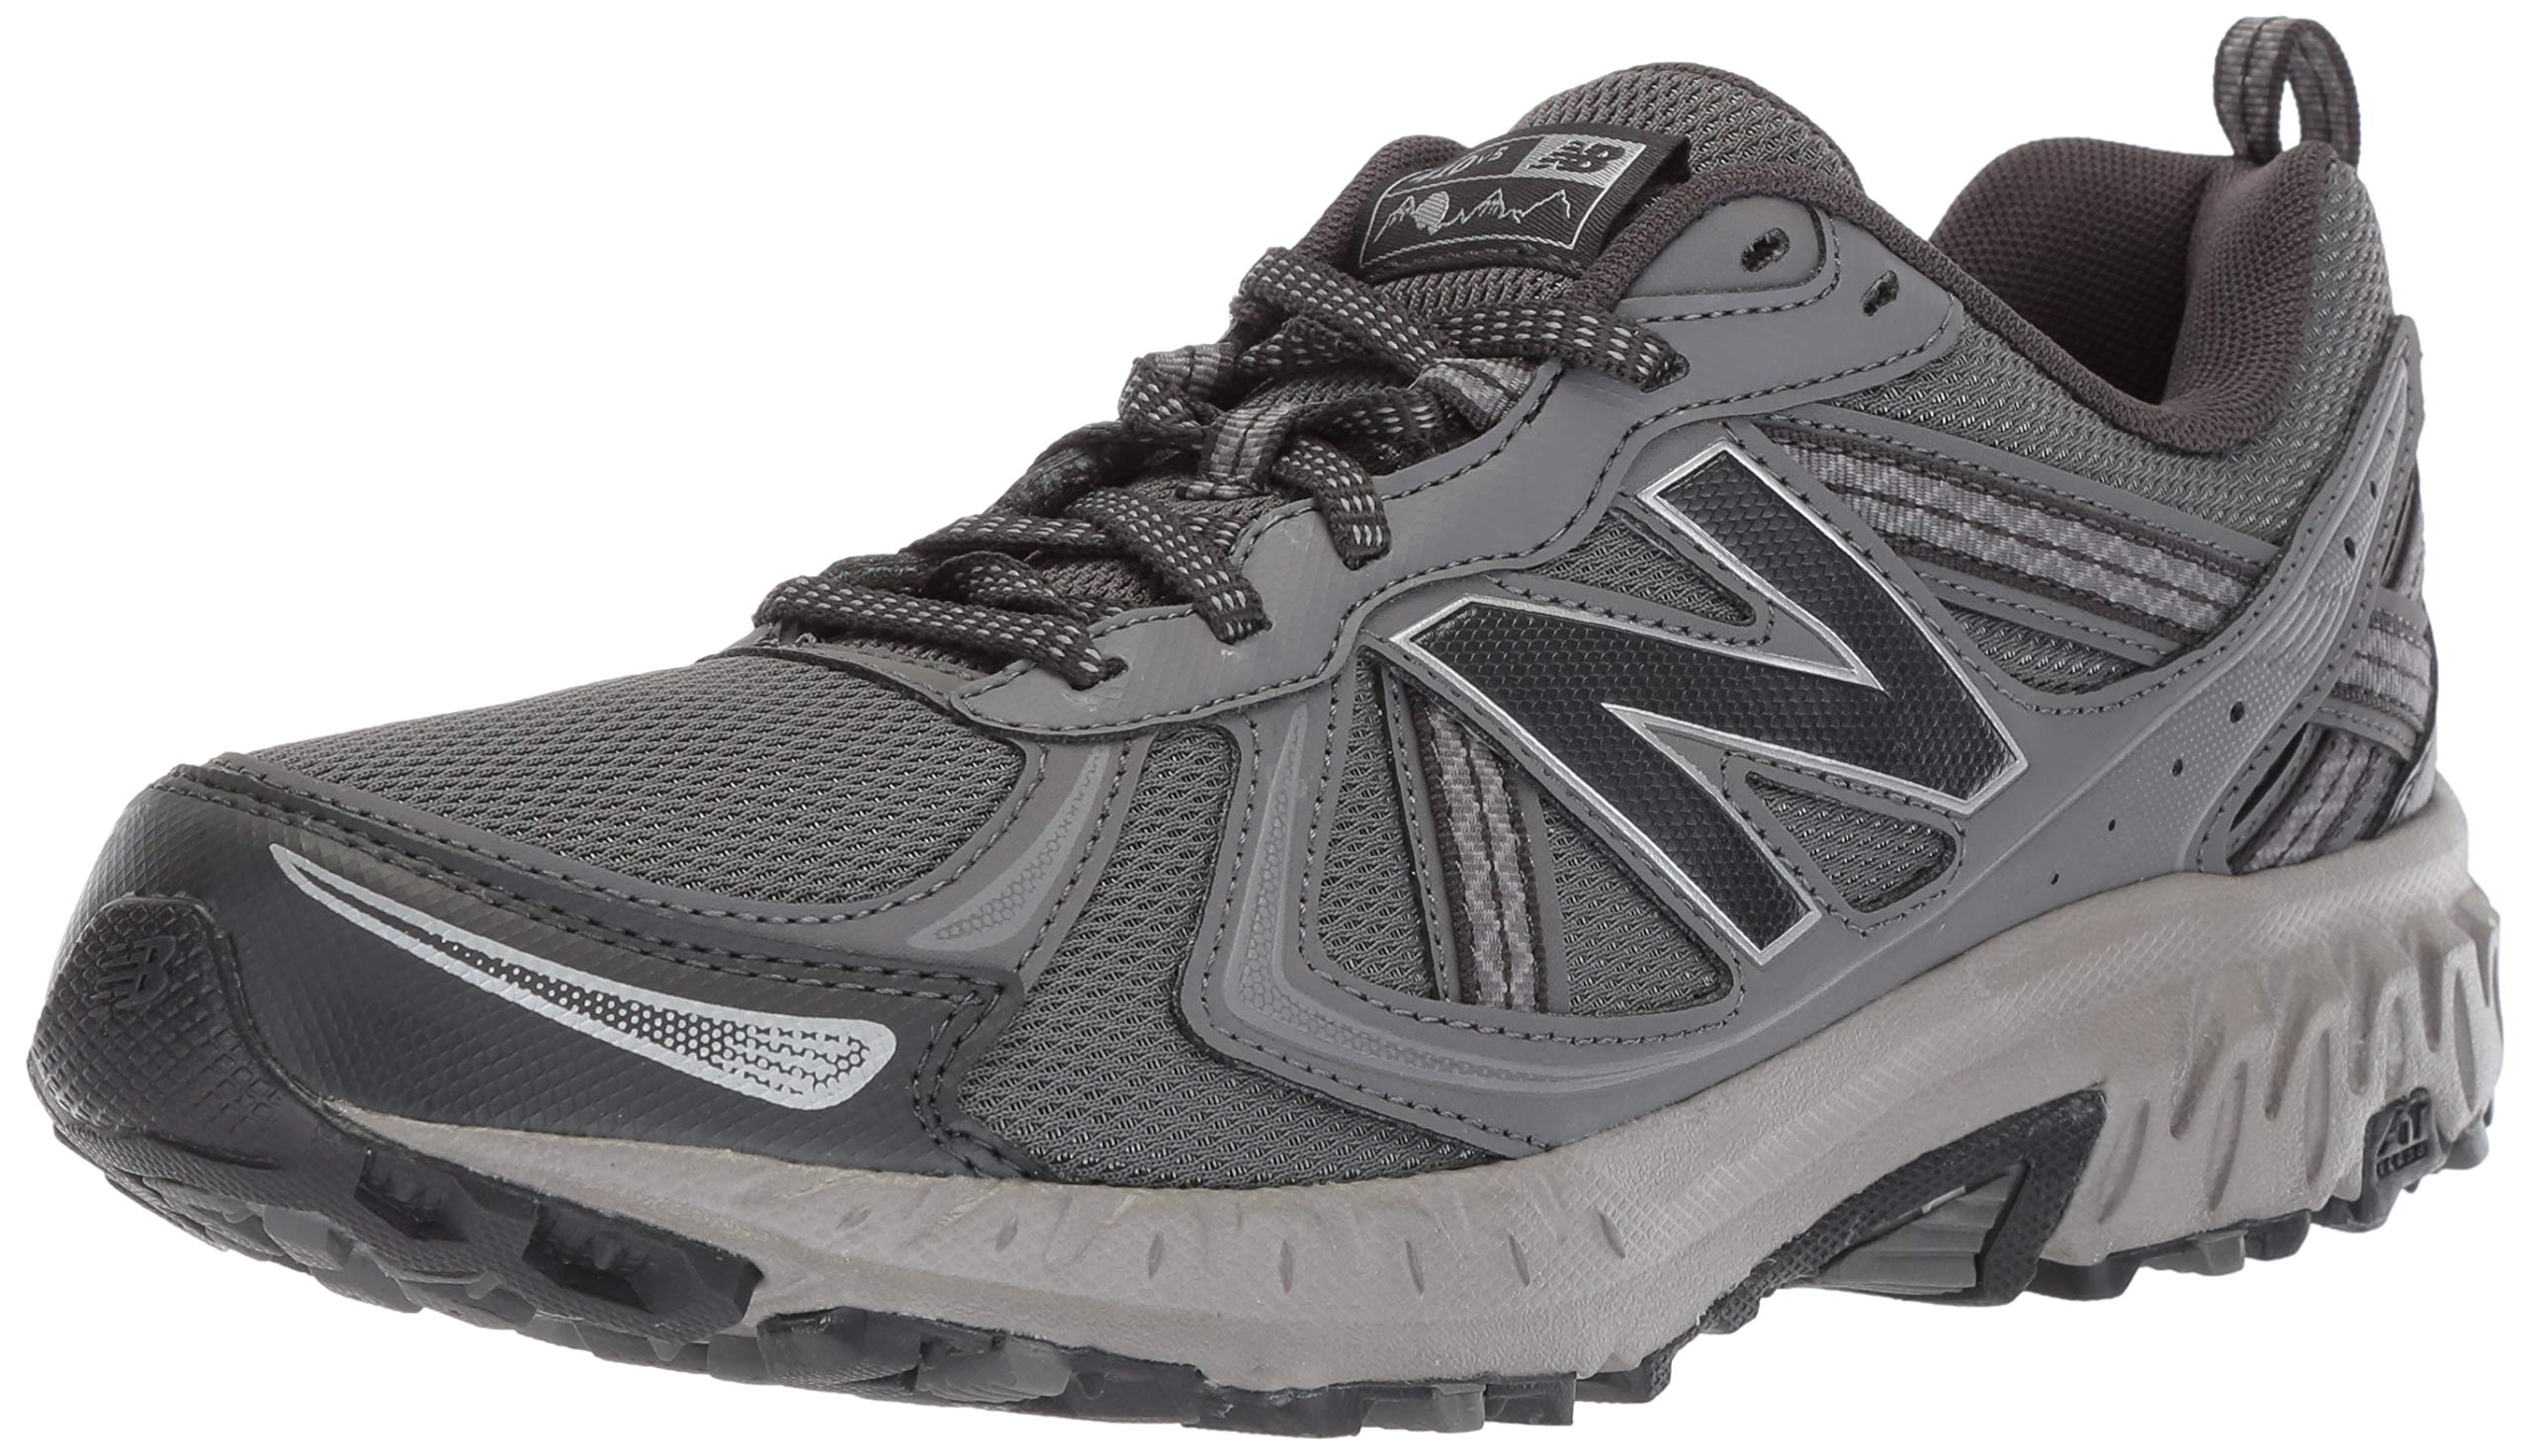 New Balance Men's 410v5 Cushioning Trail Running Shoe, Castlerock/Phantom, 12 D US by New Balance (Image #1)